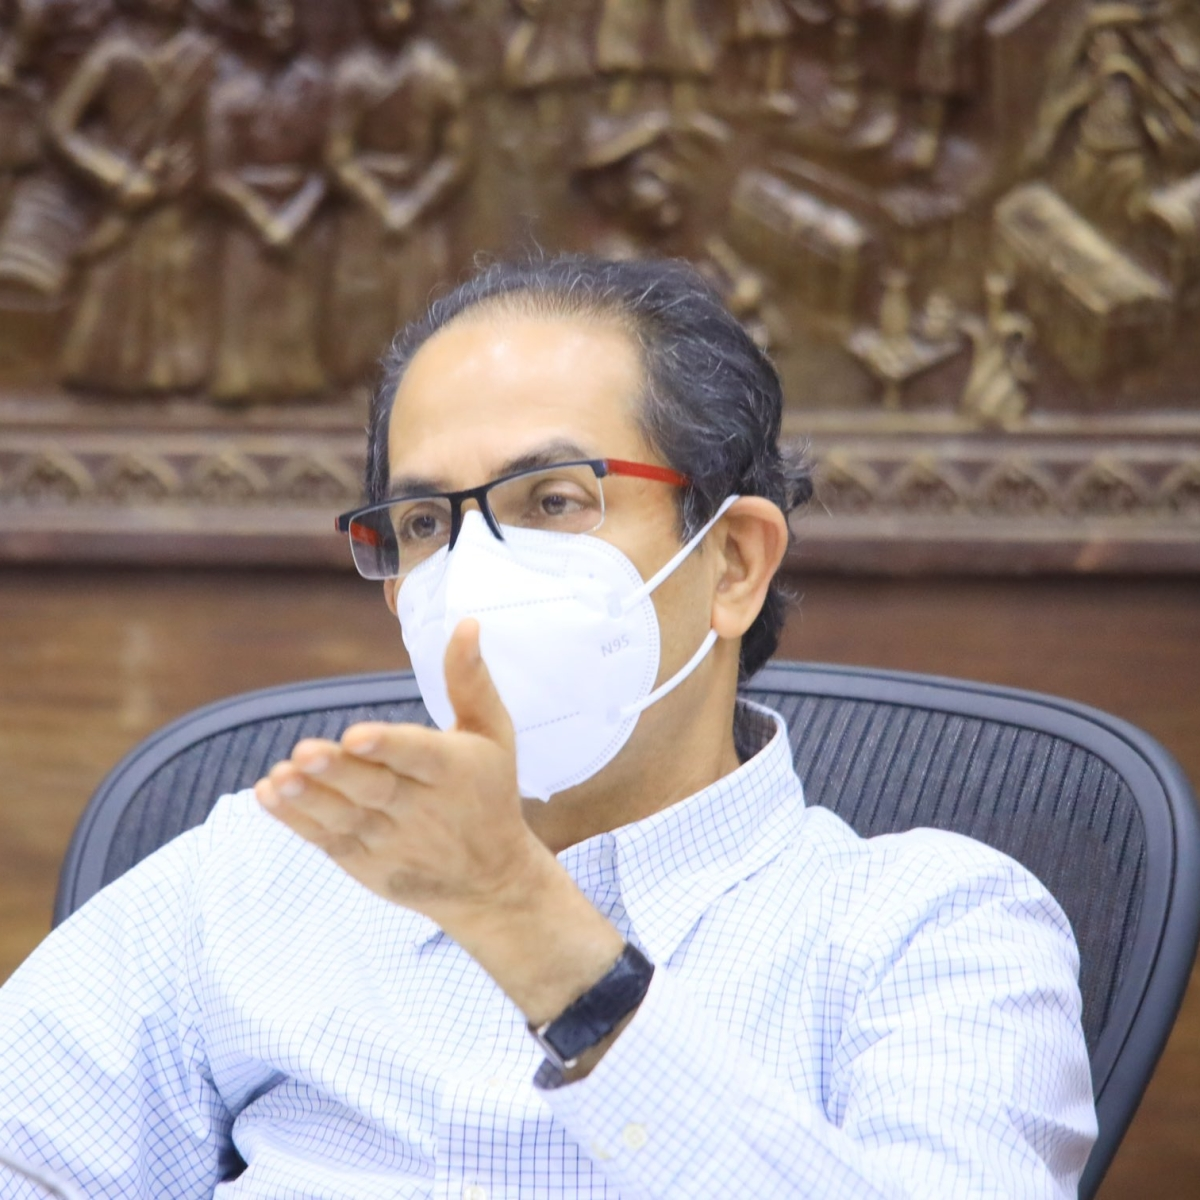 Uddhav Thackeray asks for suggestions as COVID-19 cases rise, Twitterati say 'anything but lockdown'